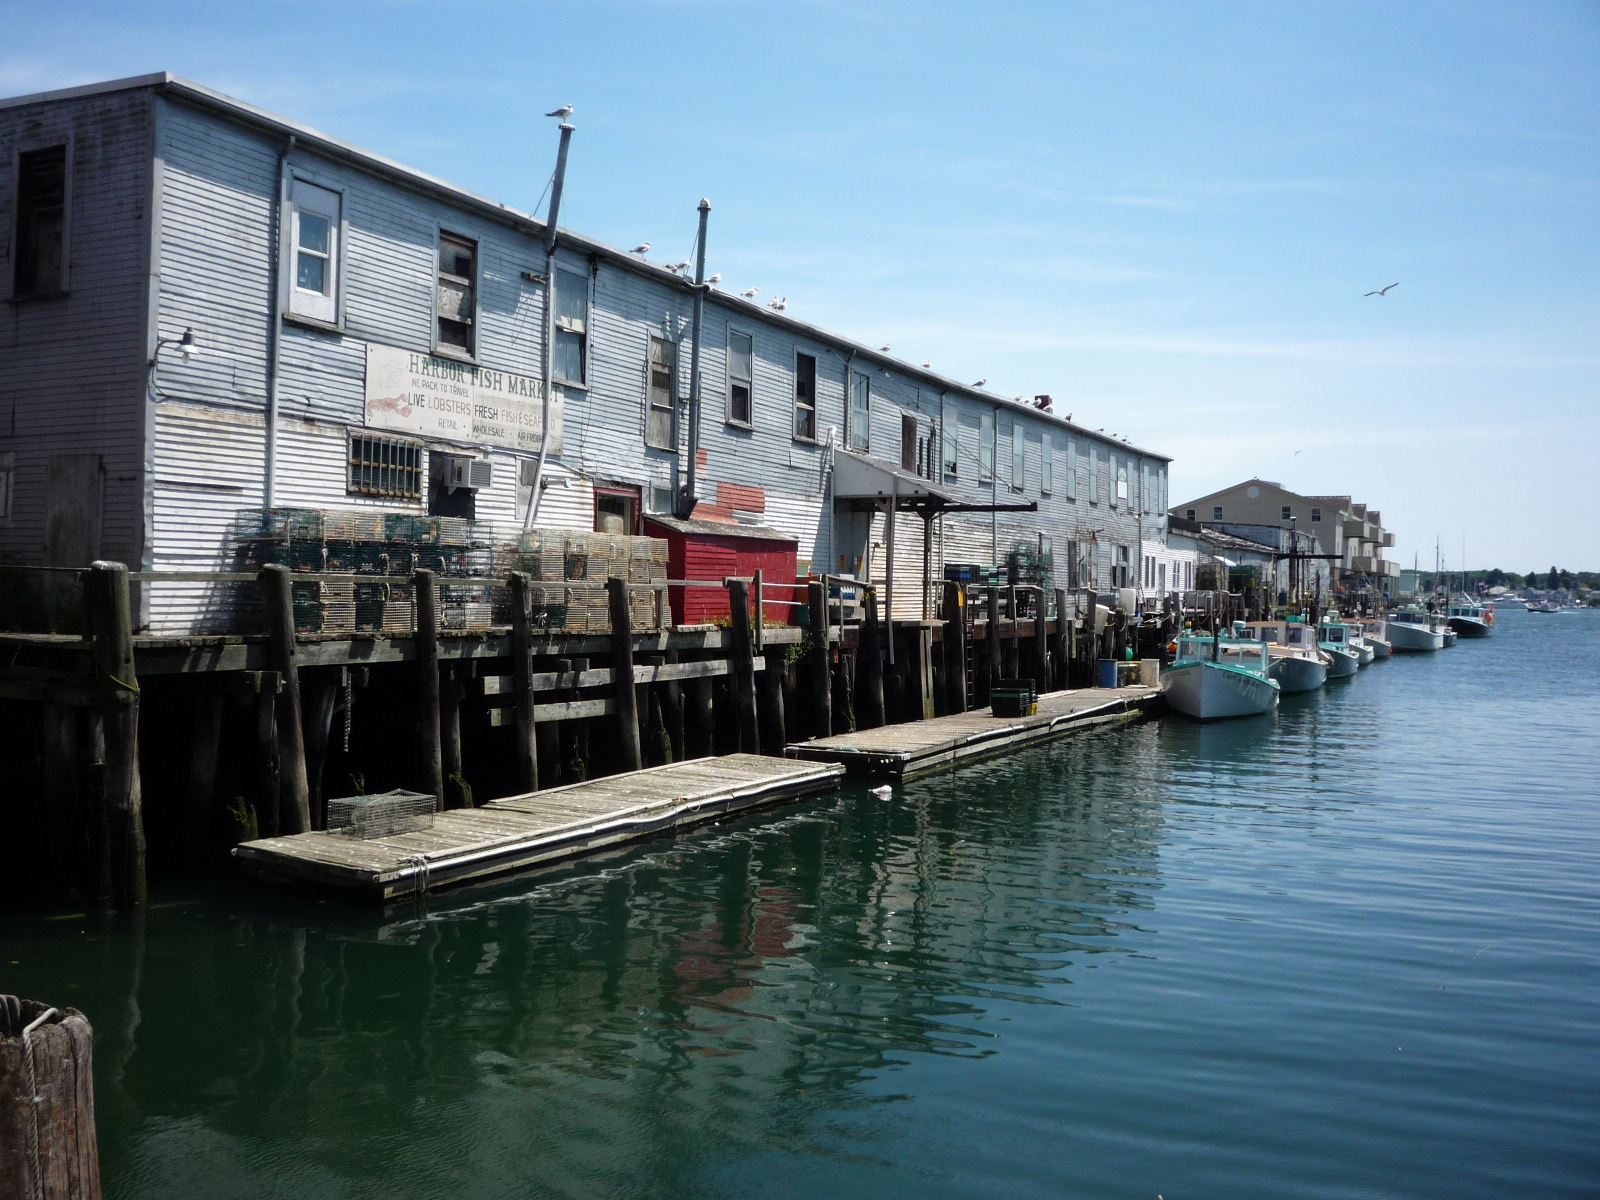 Daily pics photographs by caren marie michel harbor fish for Fish market portland maine